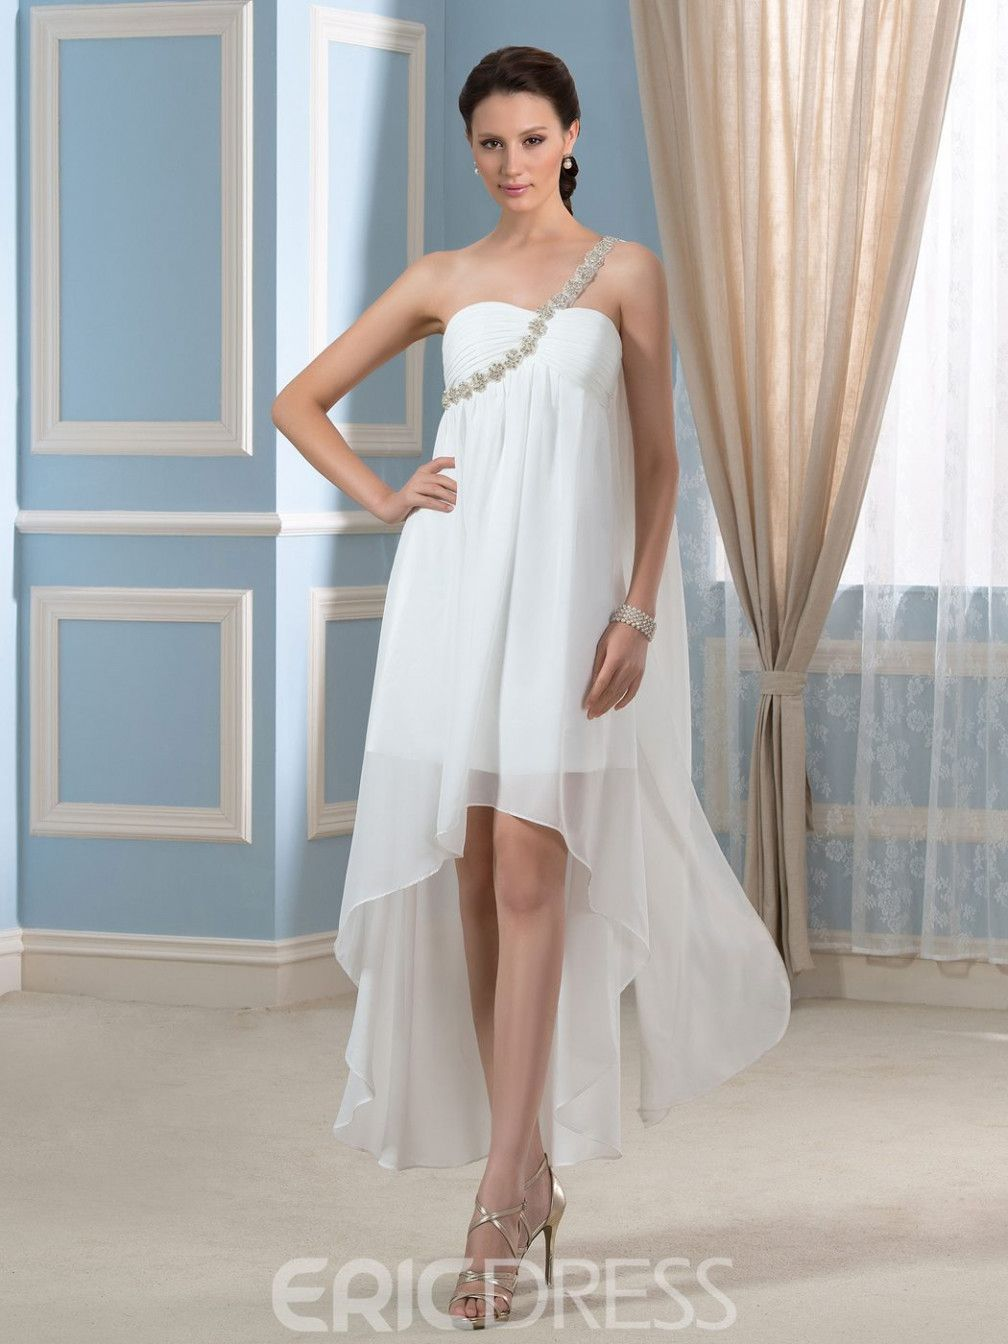 Seven Doubts About High Low Beach Wedding Dresses You Should Clarify #greekweddingdresses